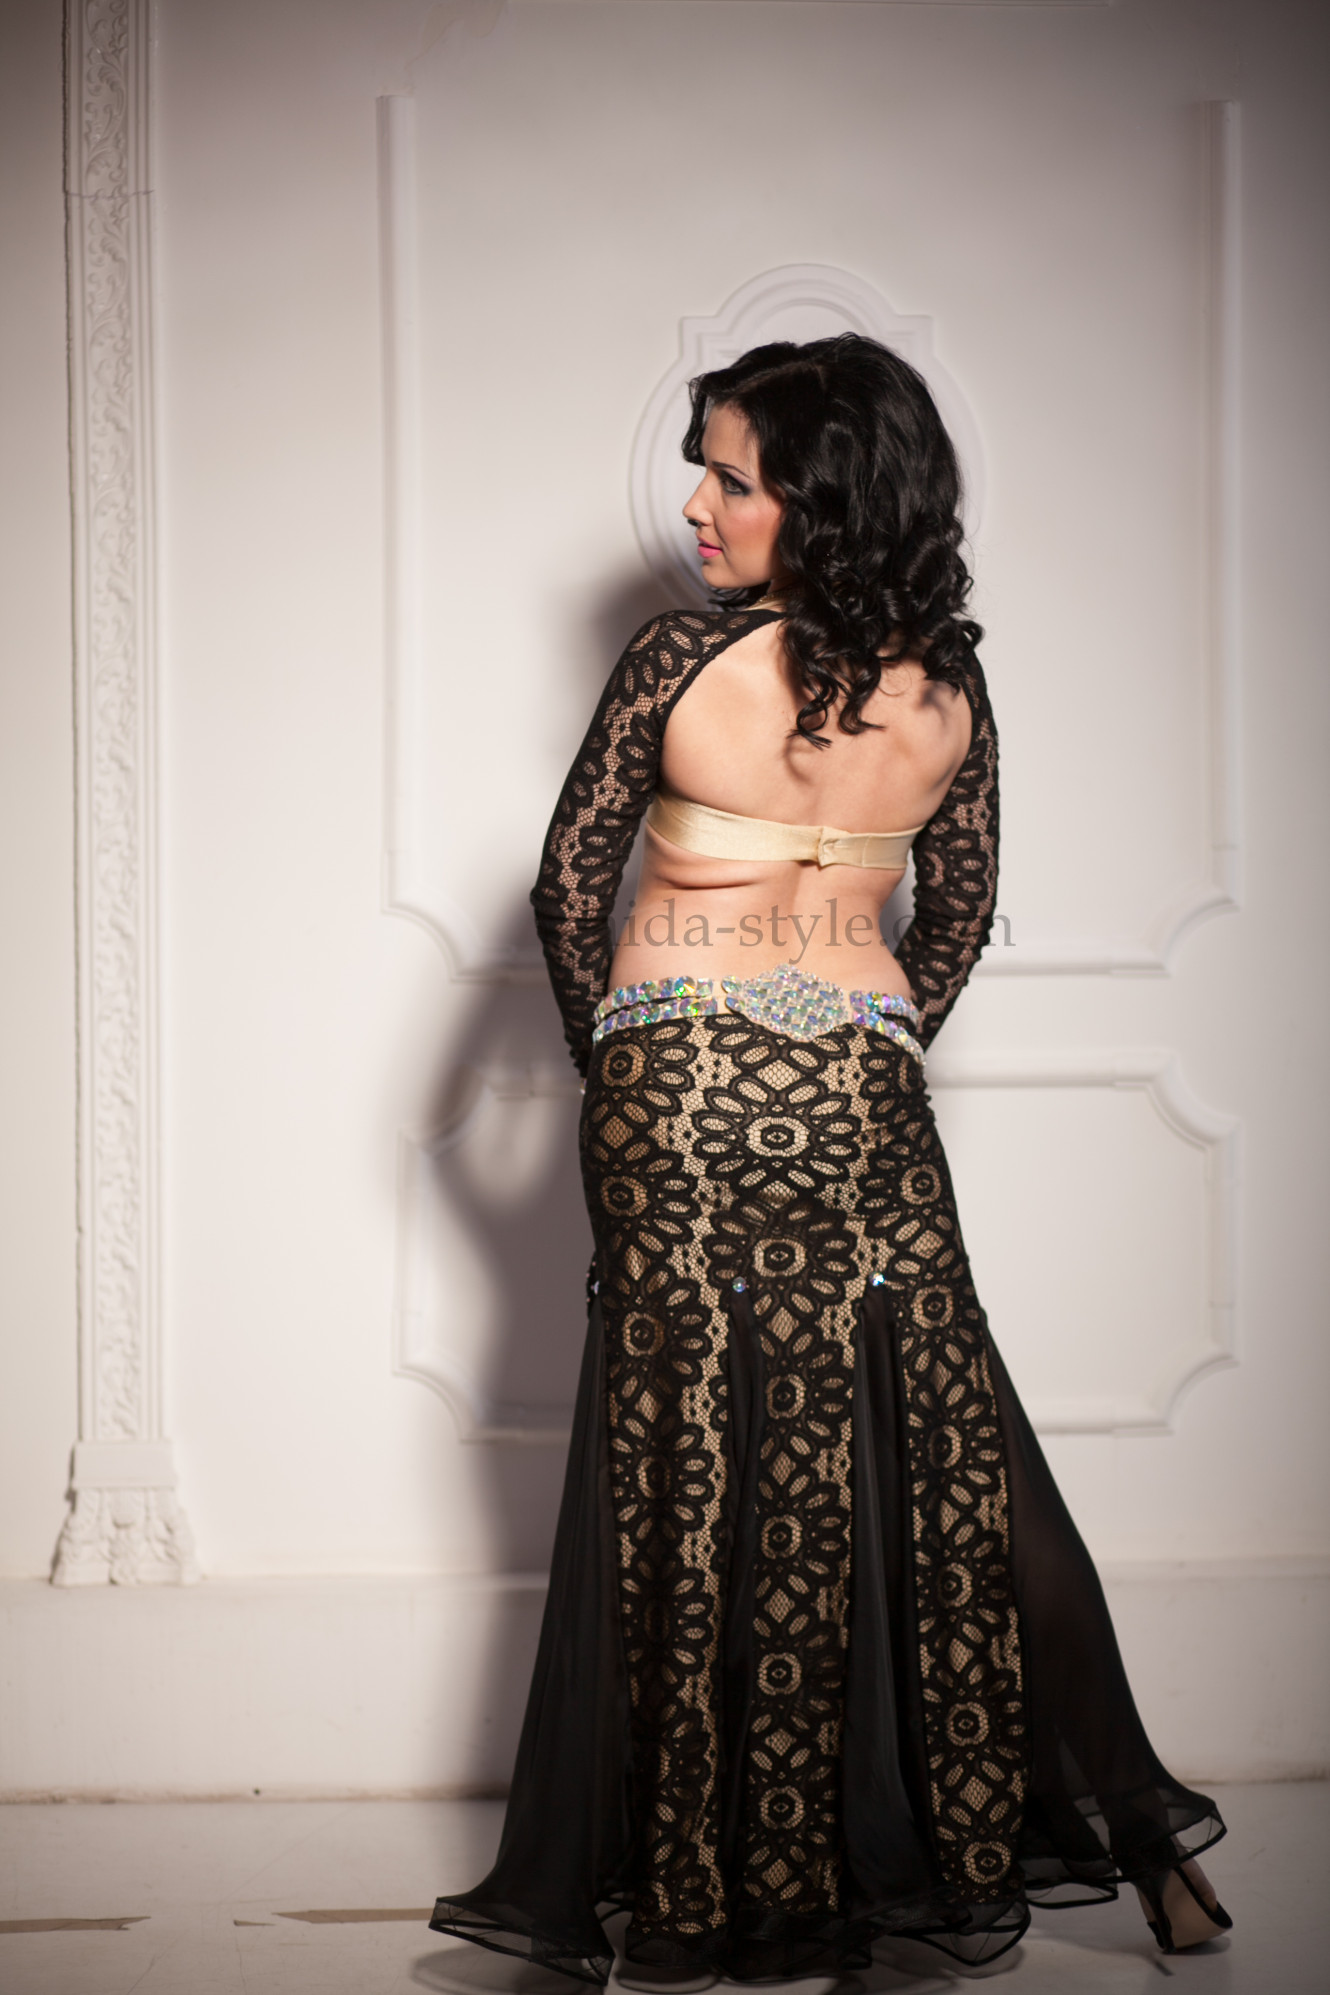 Professional belly dance costume in the style of classical evening dress